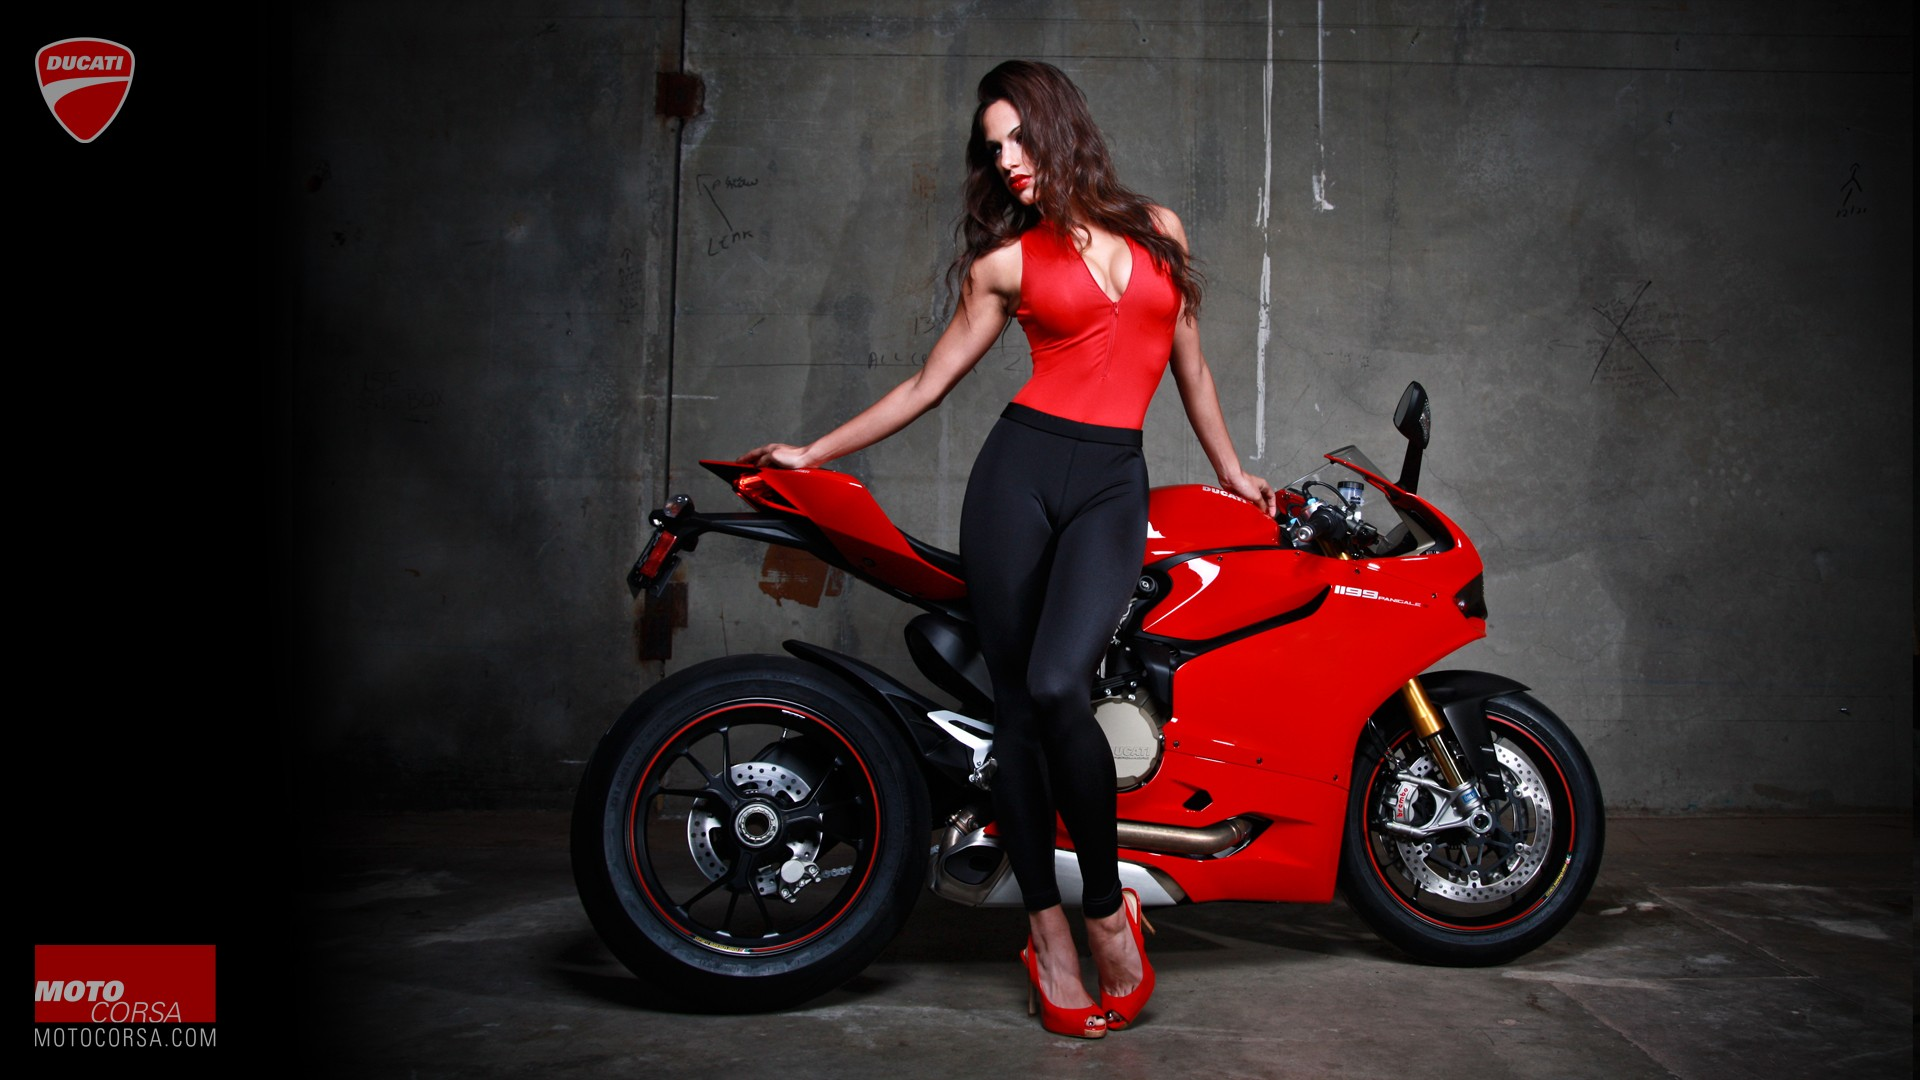 ducati 1199 hd bikes 4k wallpapers images backgrounds